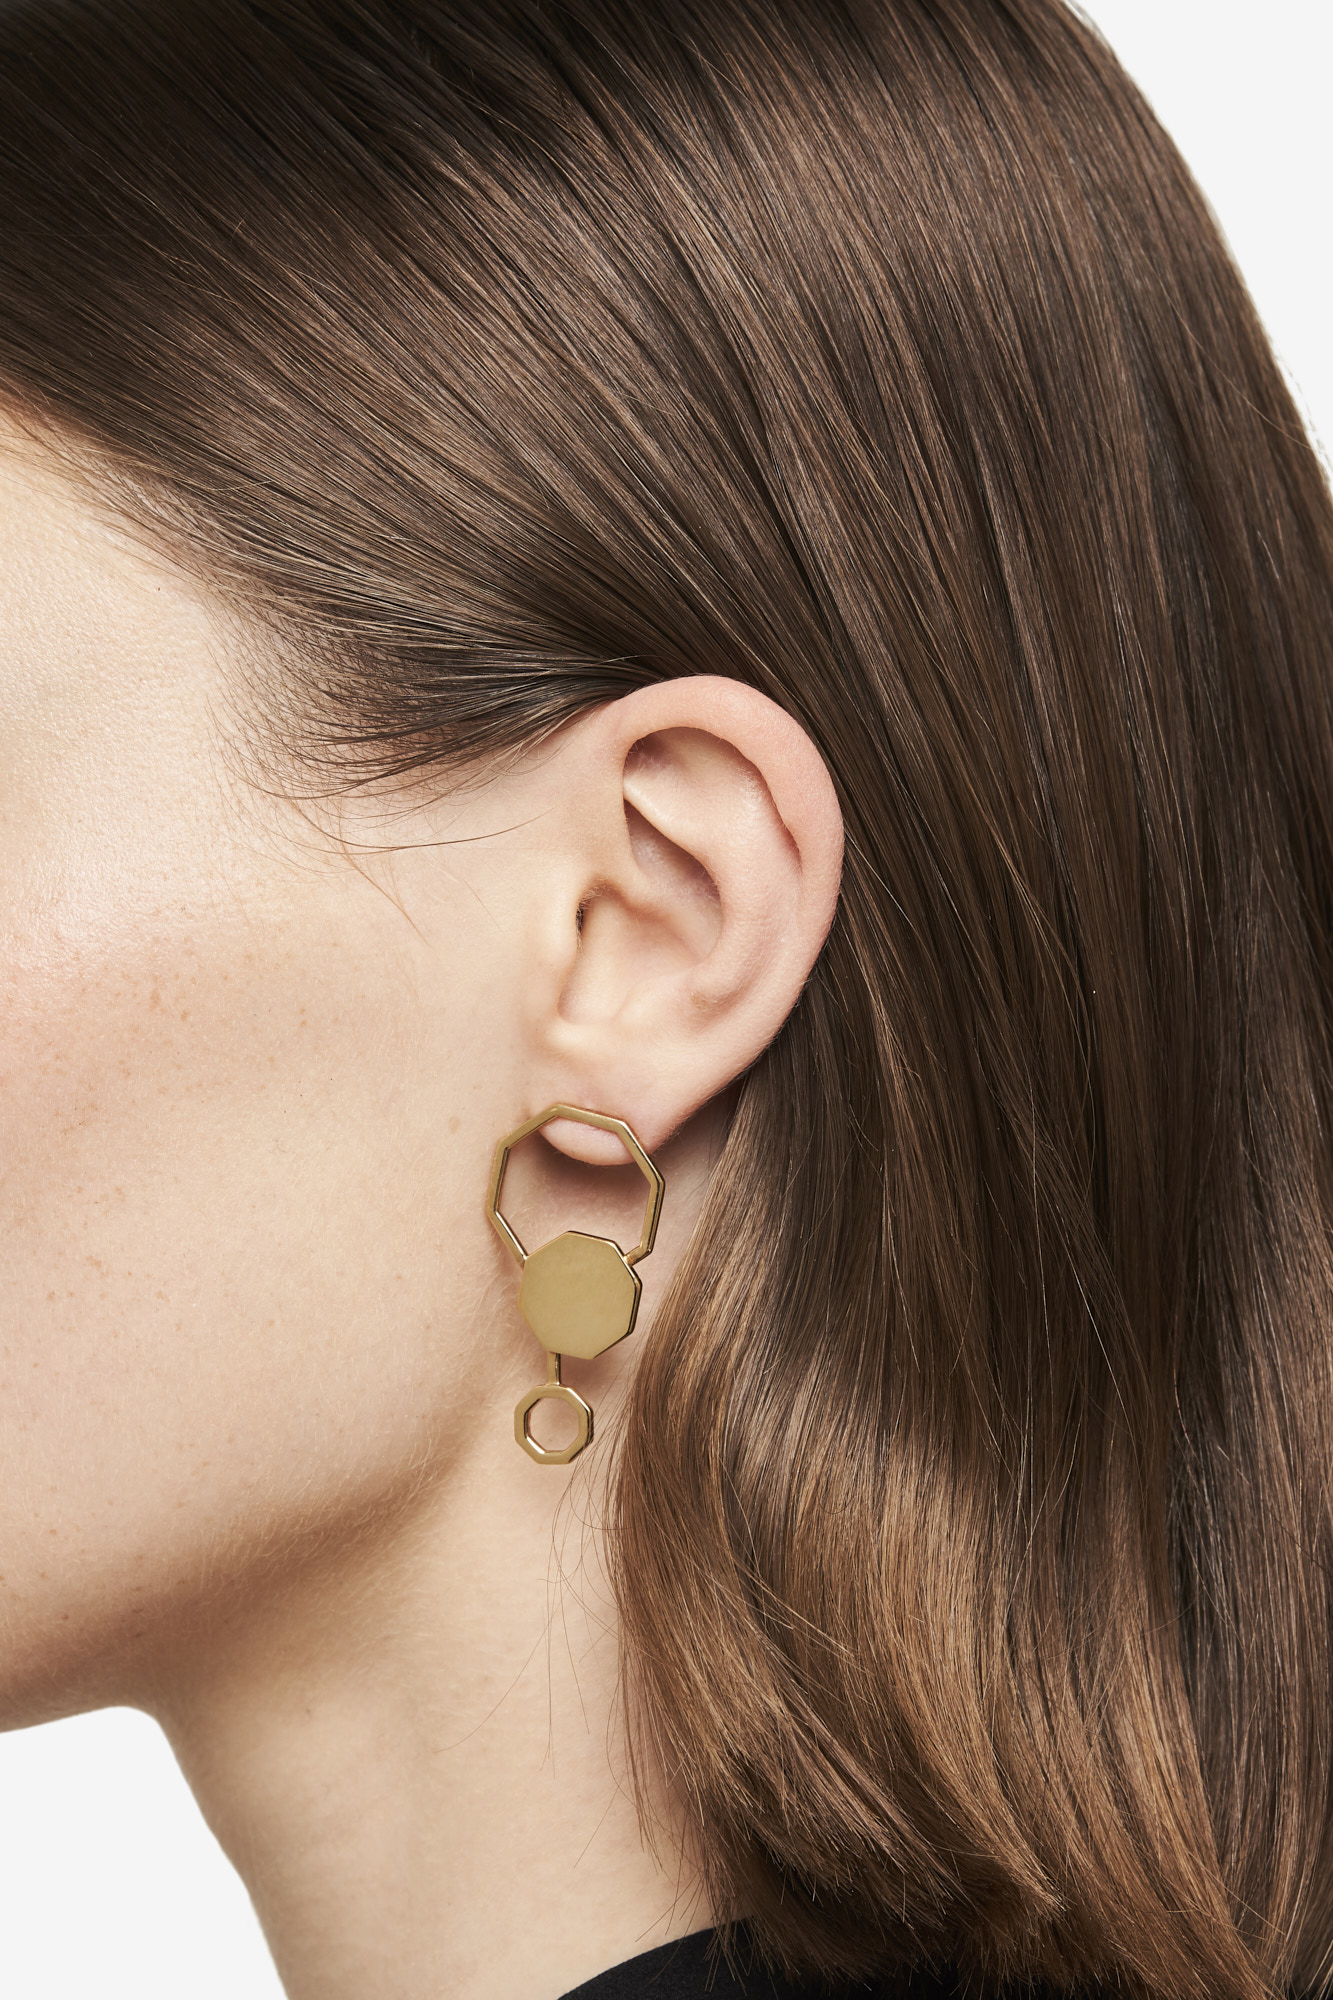 19-03-5-1-006-113-09_Beehaive Earring_Gold Plated_02